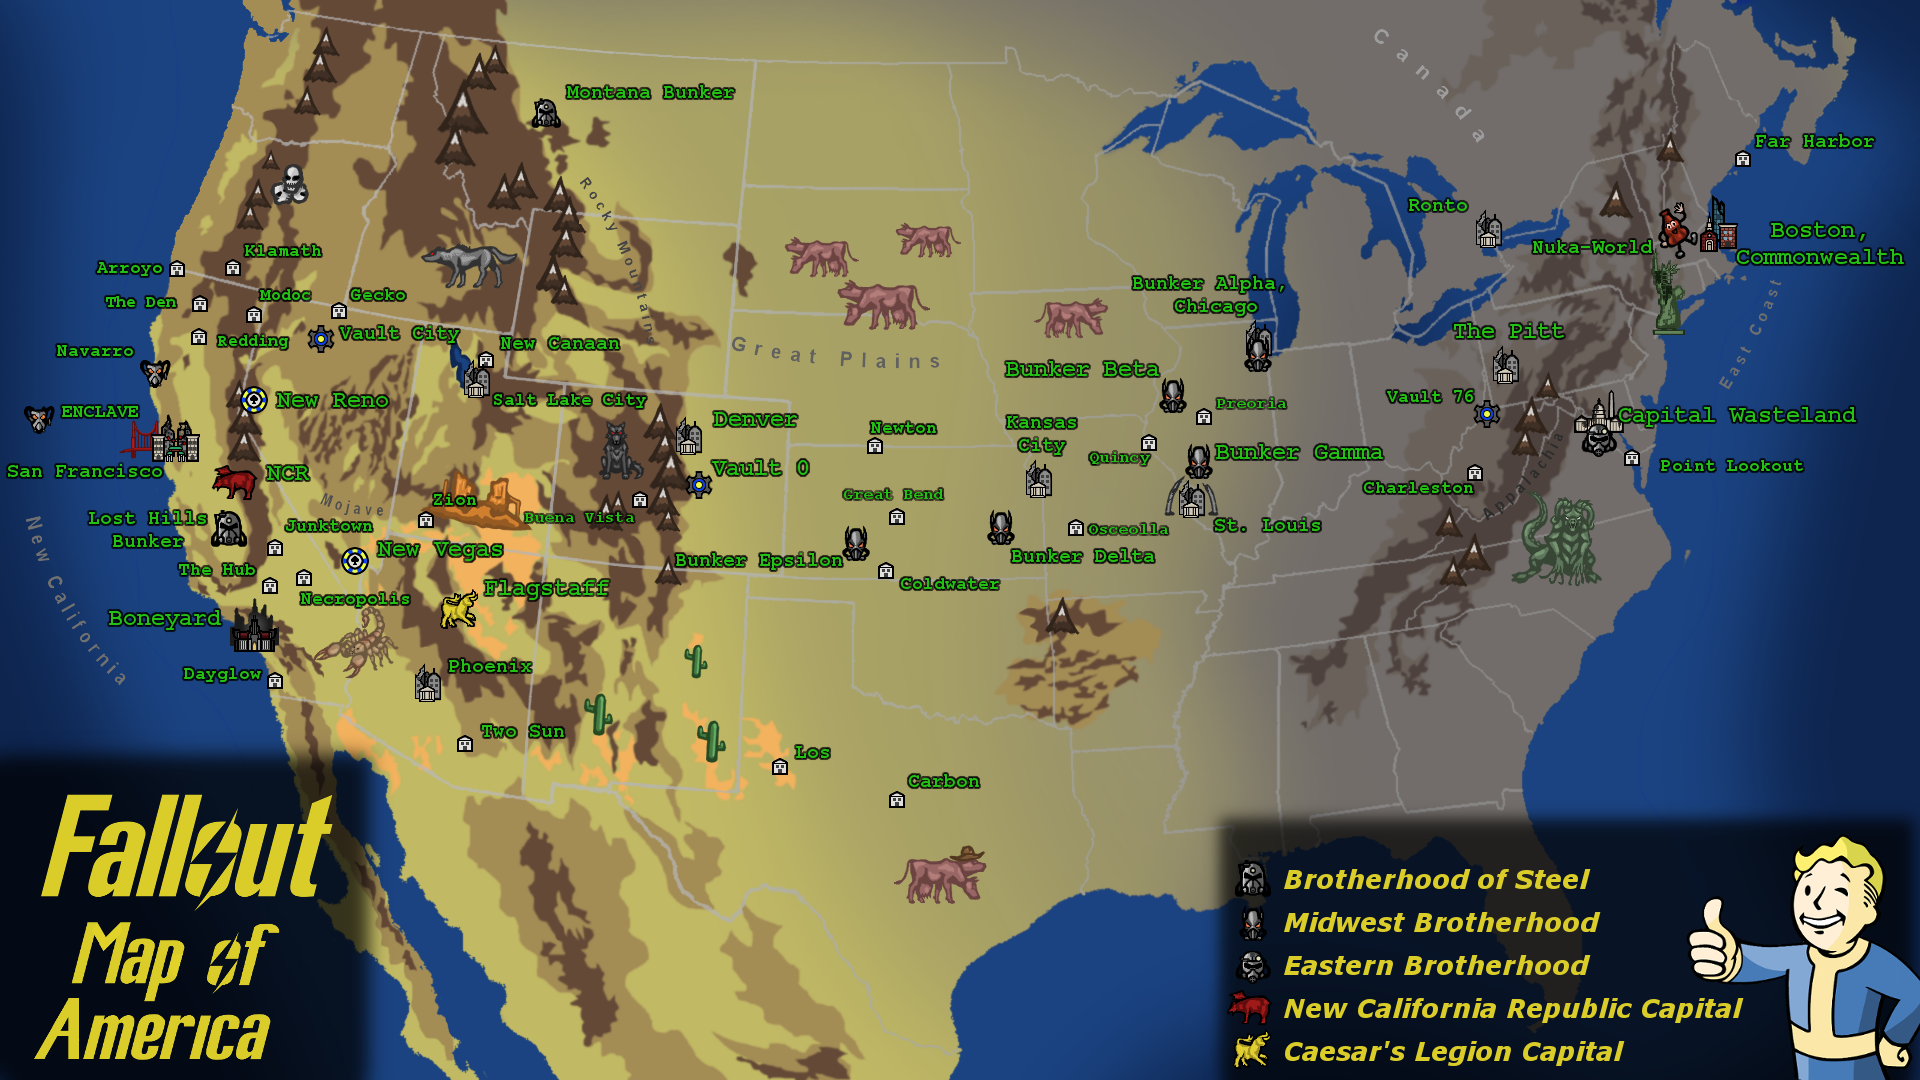 fallout united states map Fallout Map of America by CrassiusCurio94 on DeviantArt